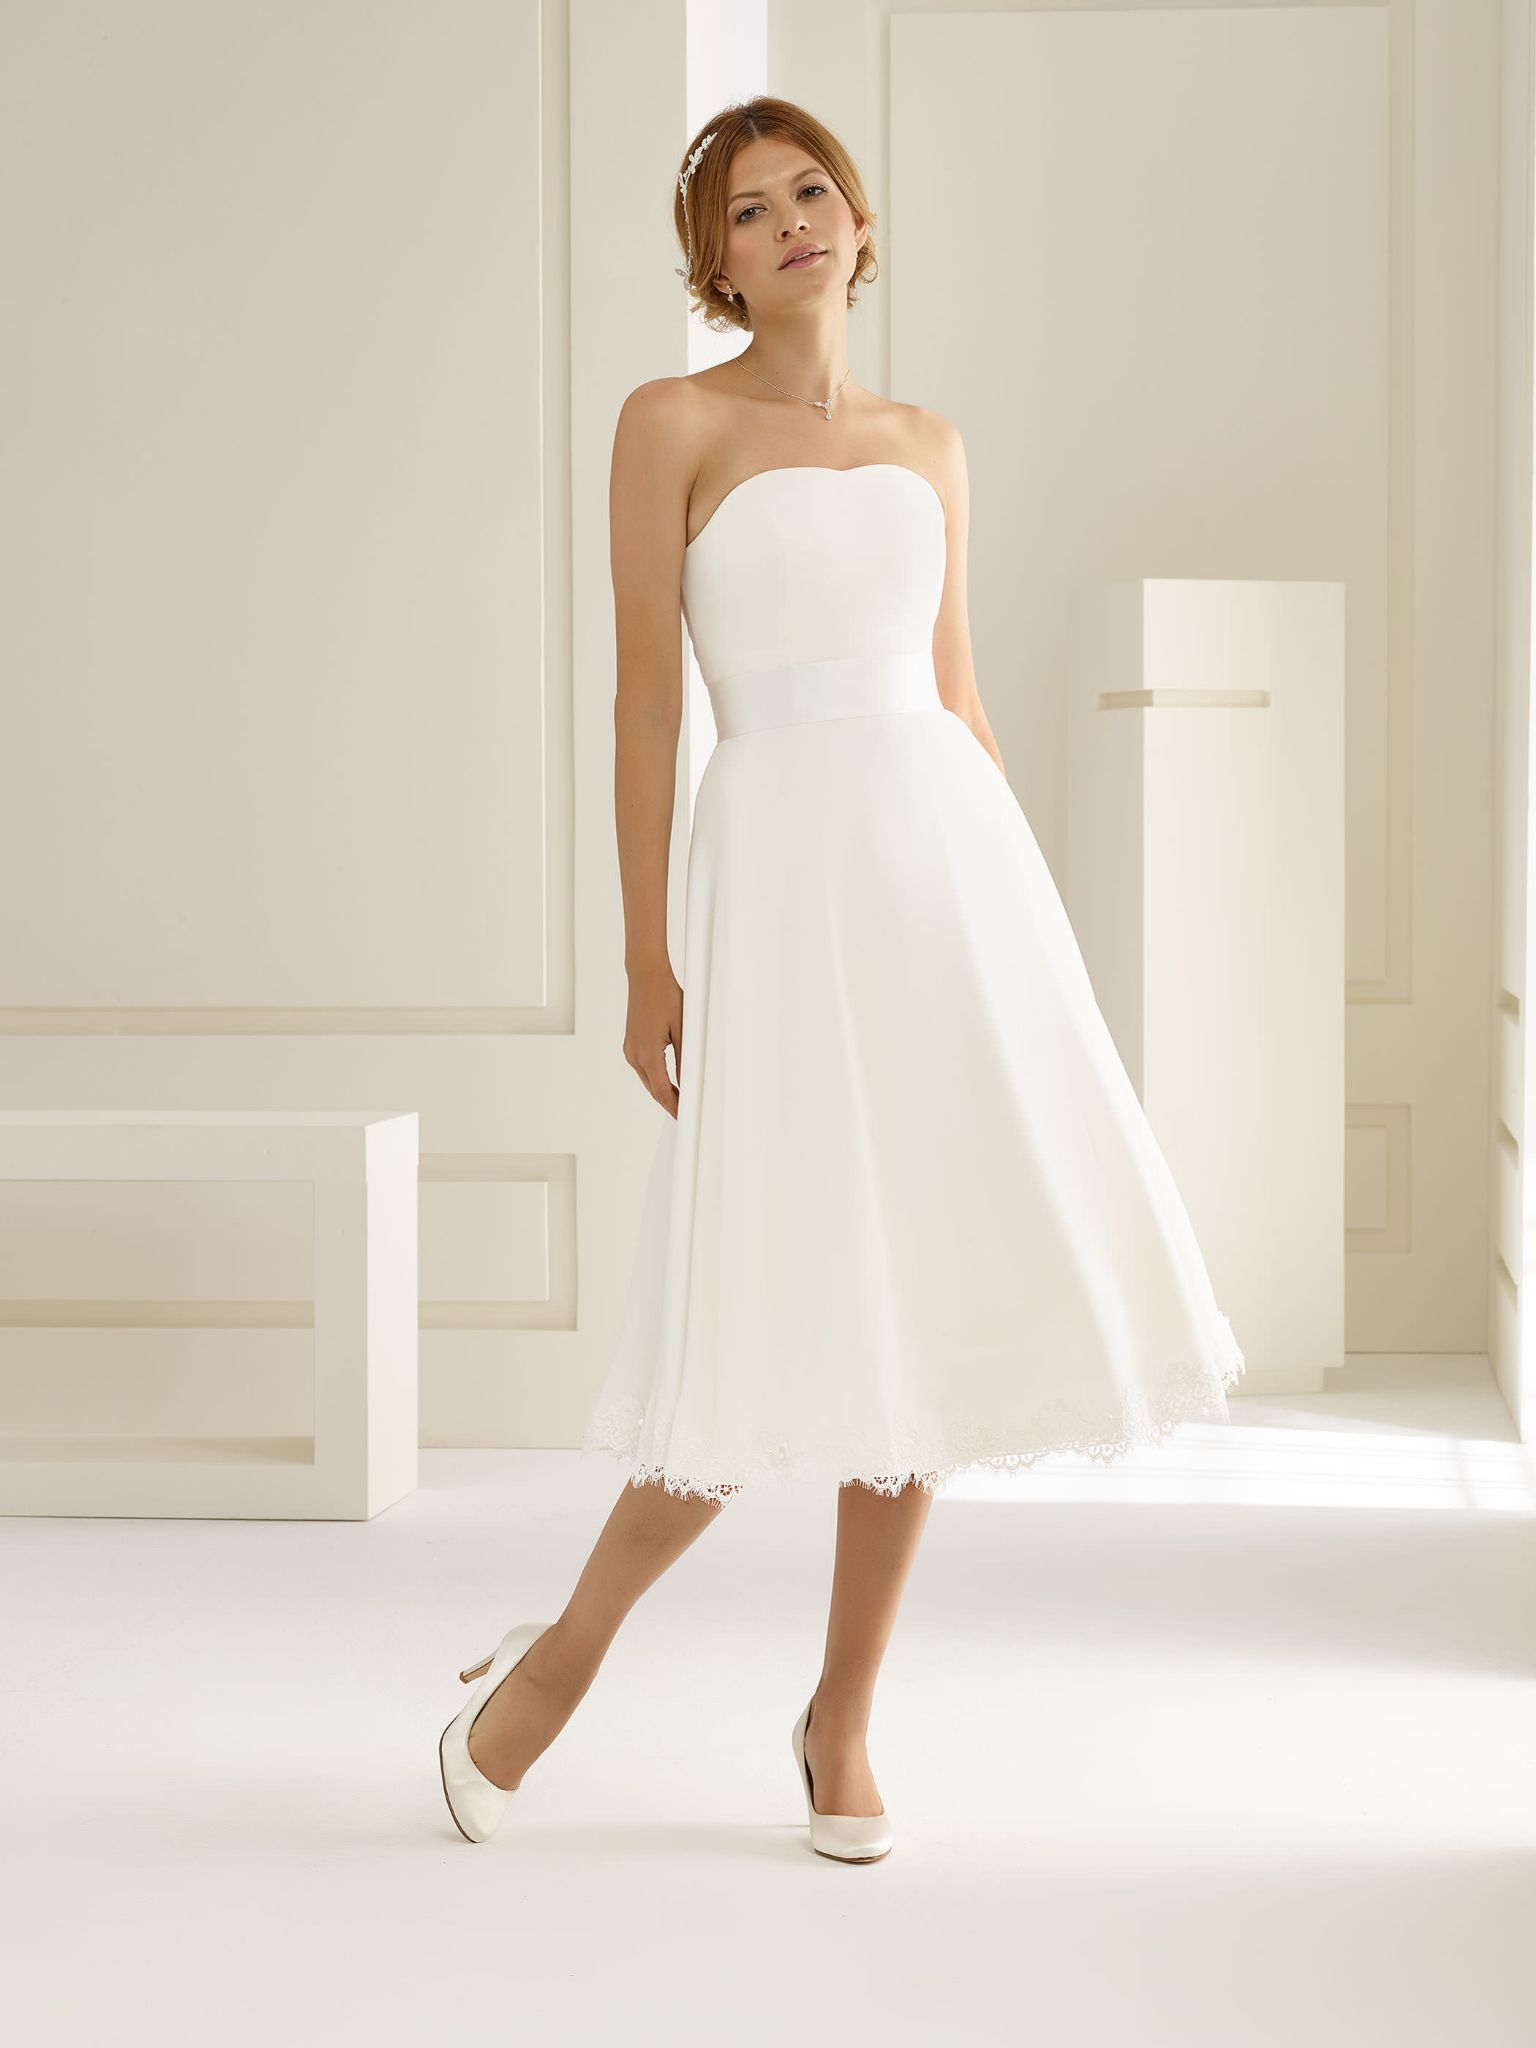 tea length wedding dresses, short wedding dresses